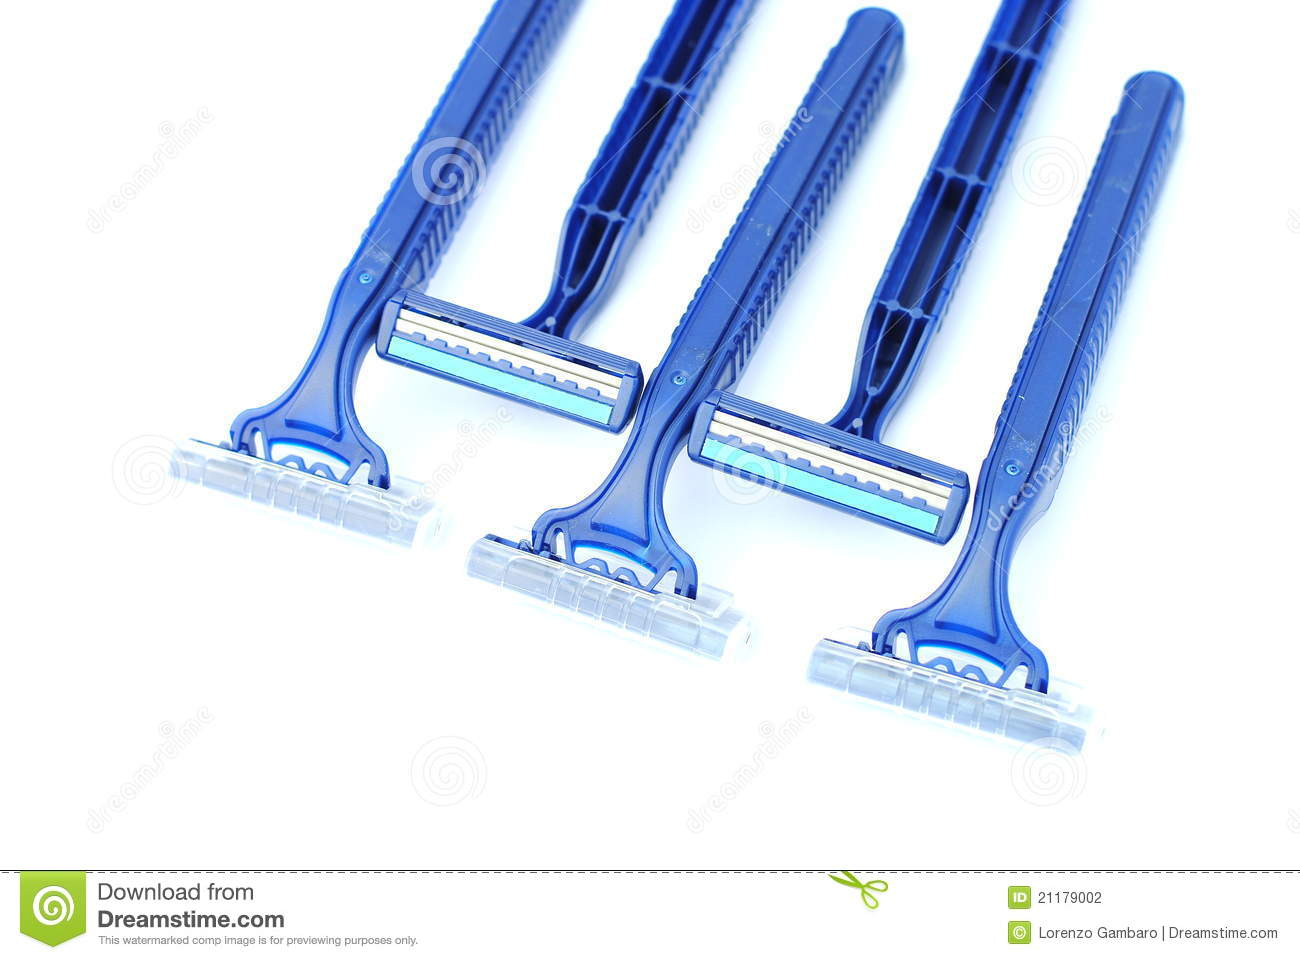 Seven disposable blu razors